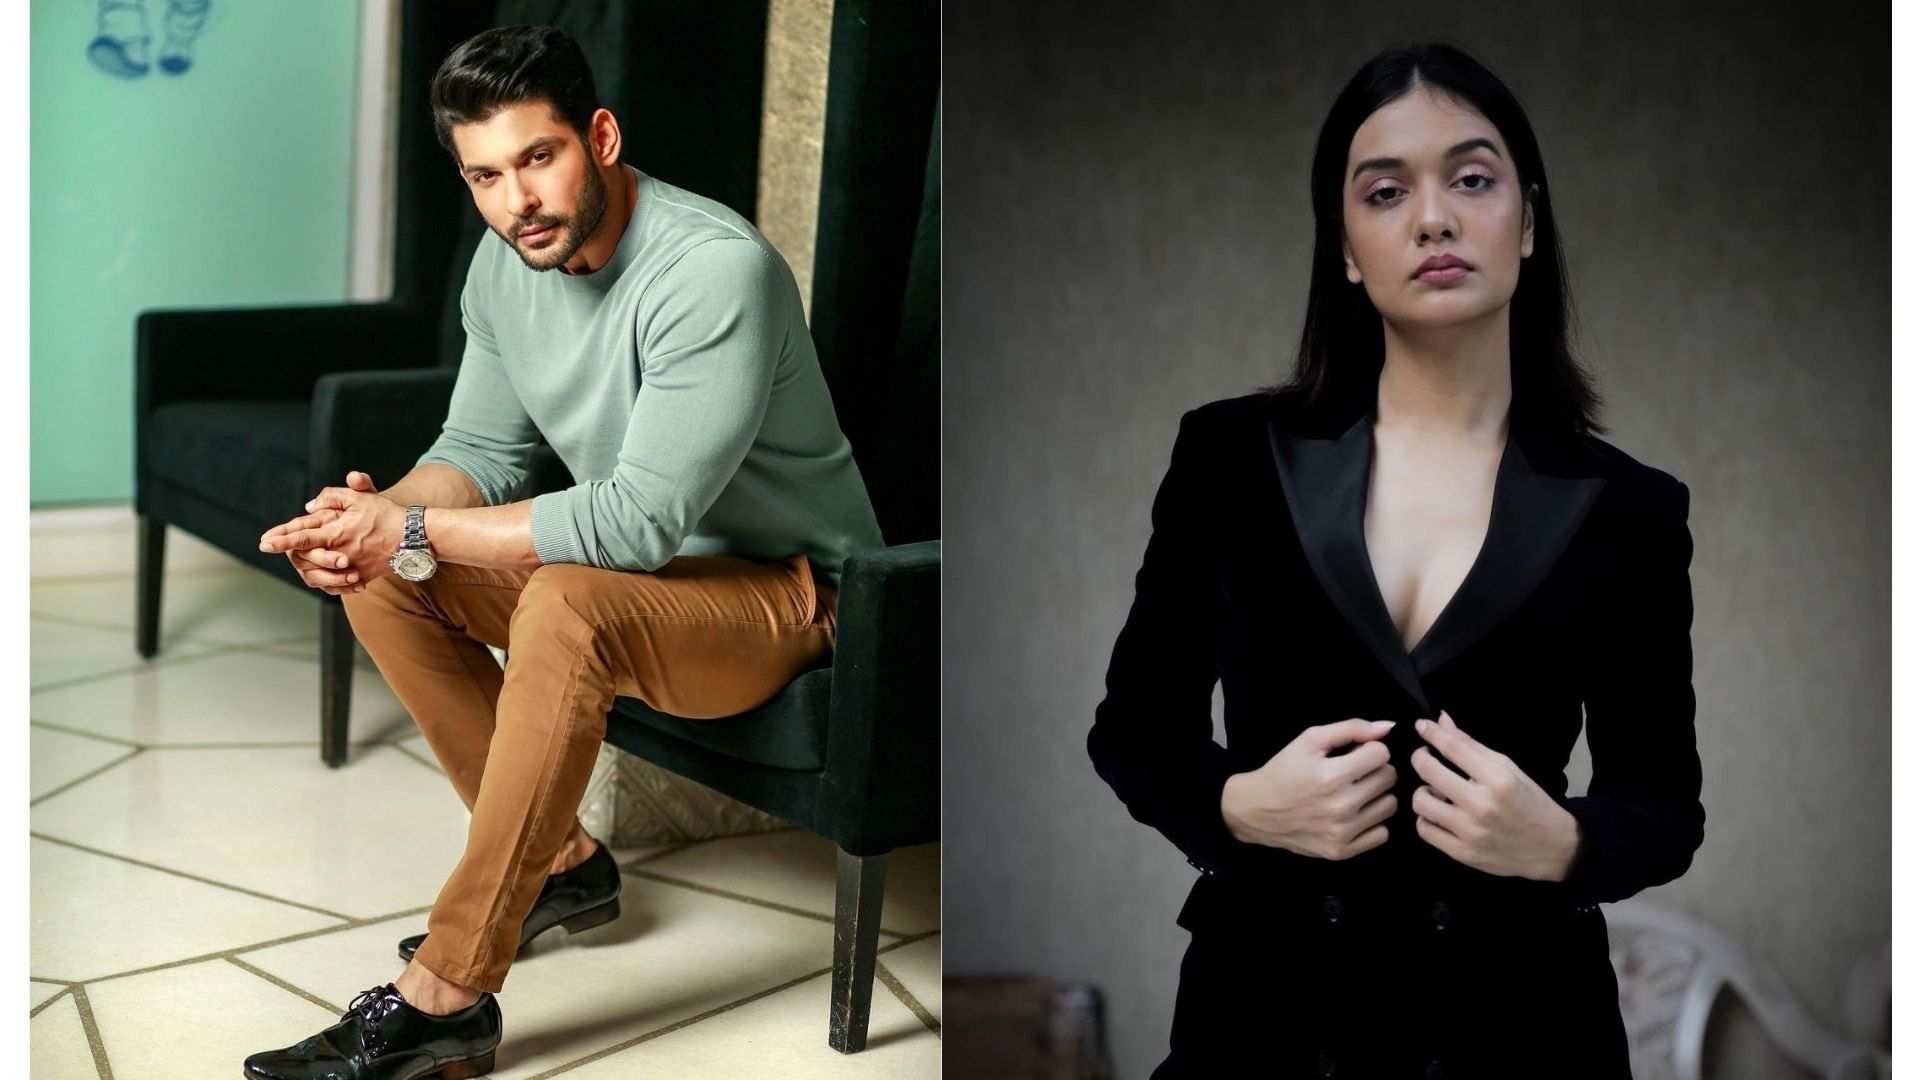 TV Actress Divya Agarwal Pays Tribute To Sidharth Shukla In Recent IG Post; Hopes He's 'Proud Of Her'